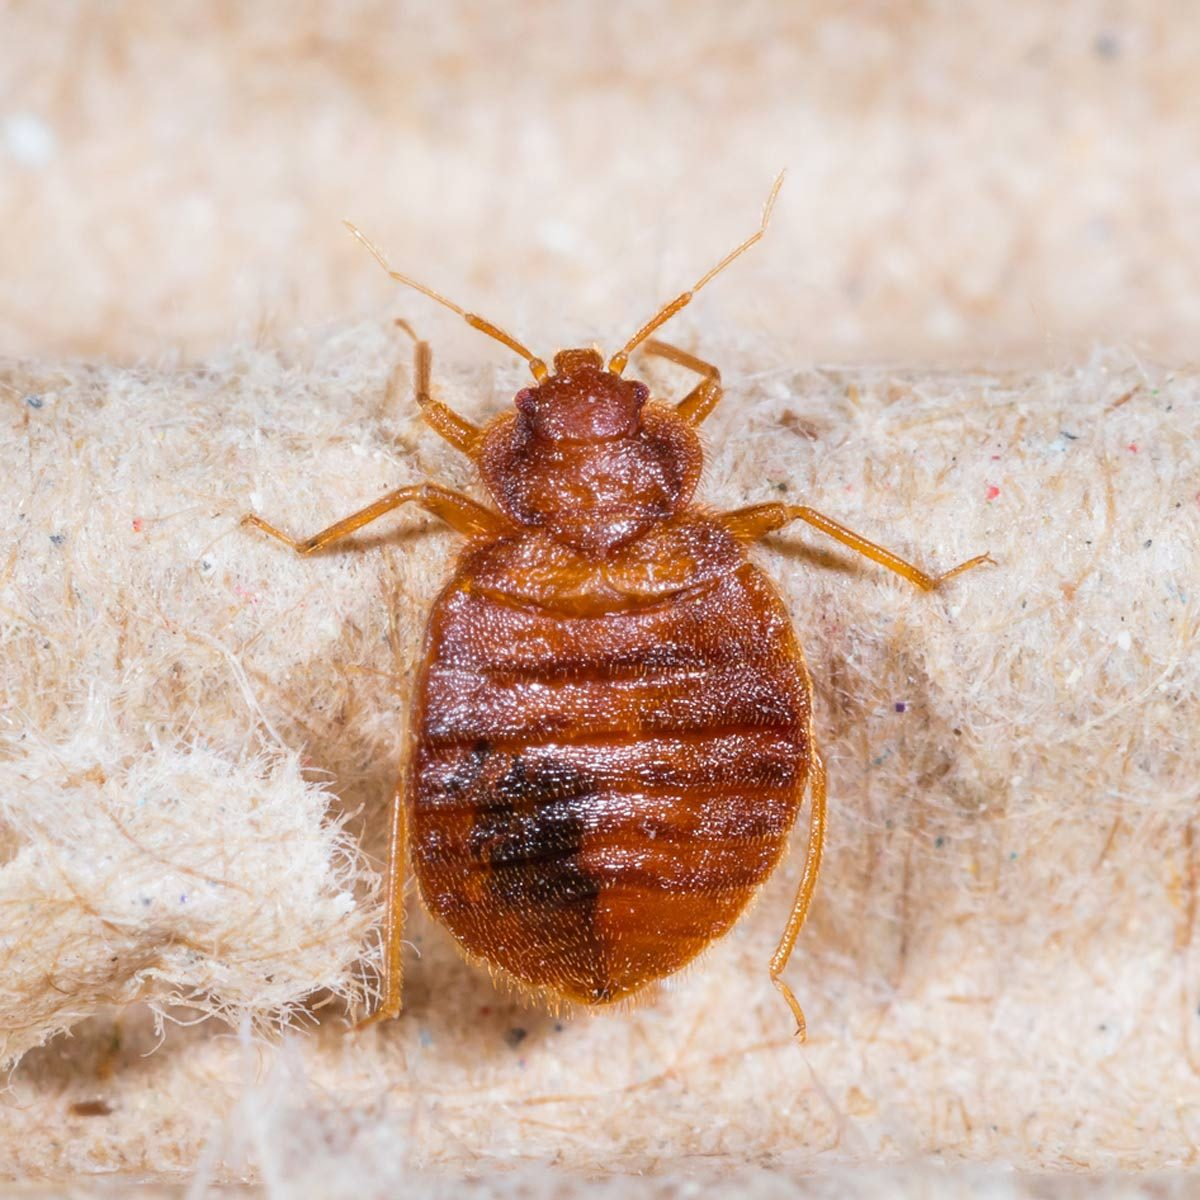 Bed Bugs in Apartments